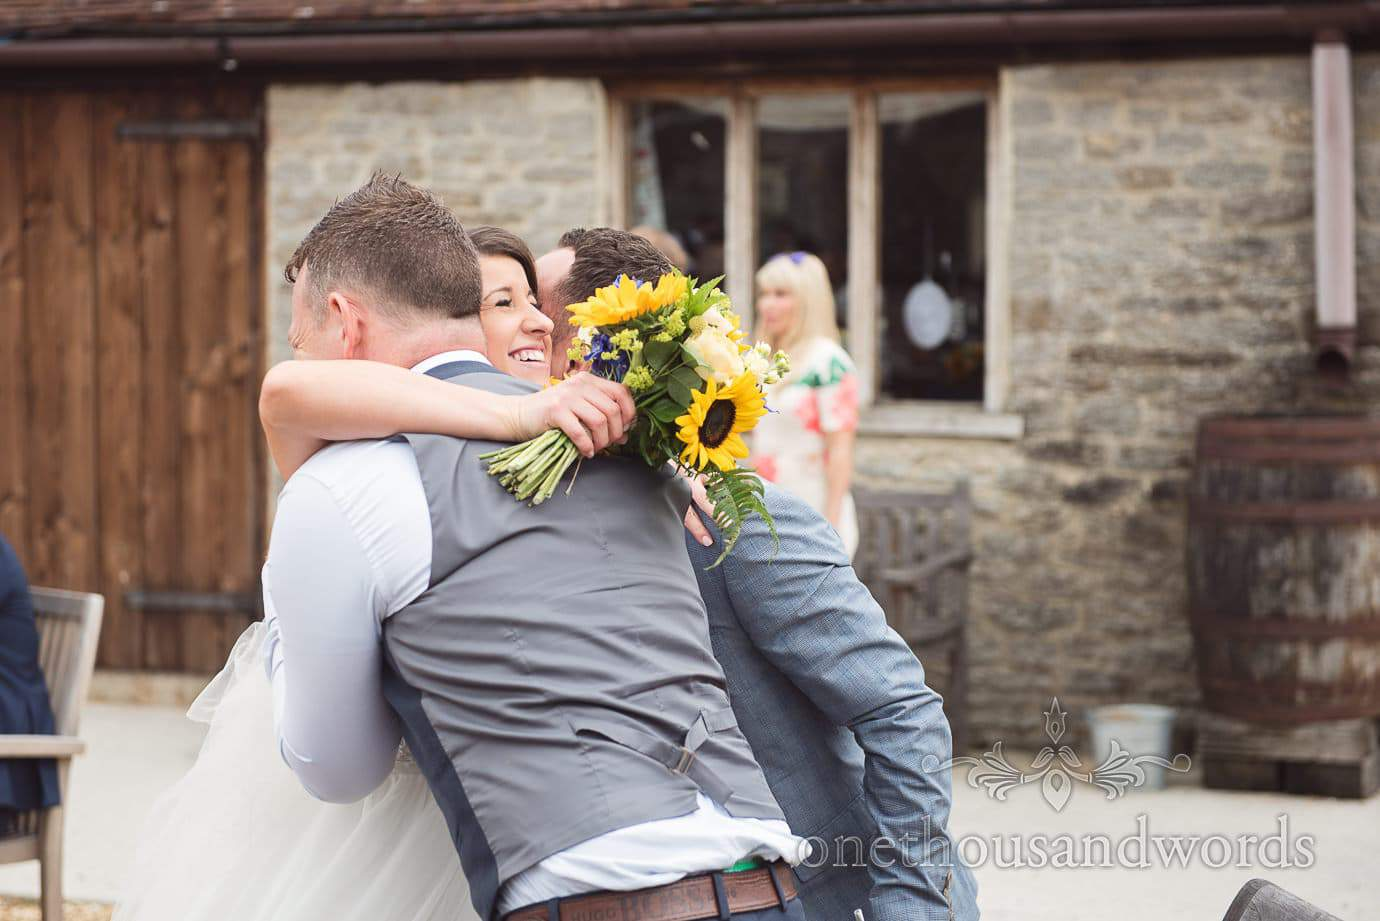 Bride embraces two guests with her sunflower wedding bouquet at rustic barn wedding